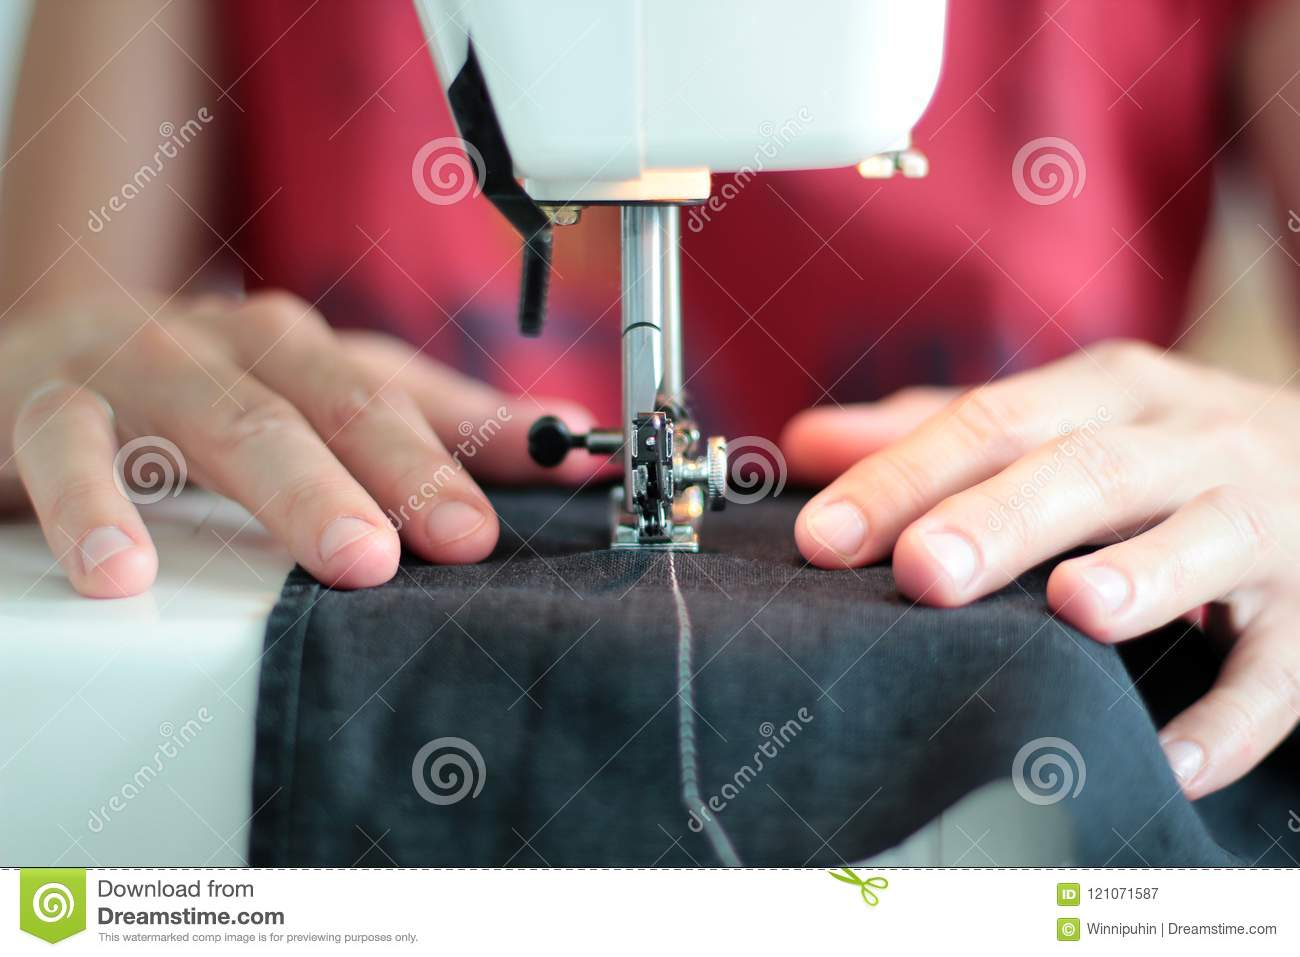 Close-up seamstress hands working on sewing machine at home. Sewing process. woman hands behind sewing close-up